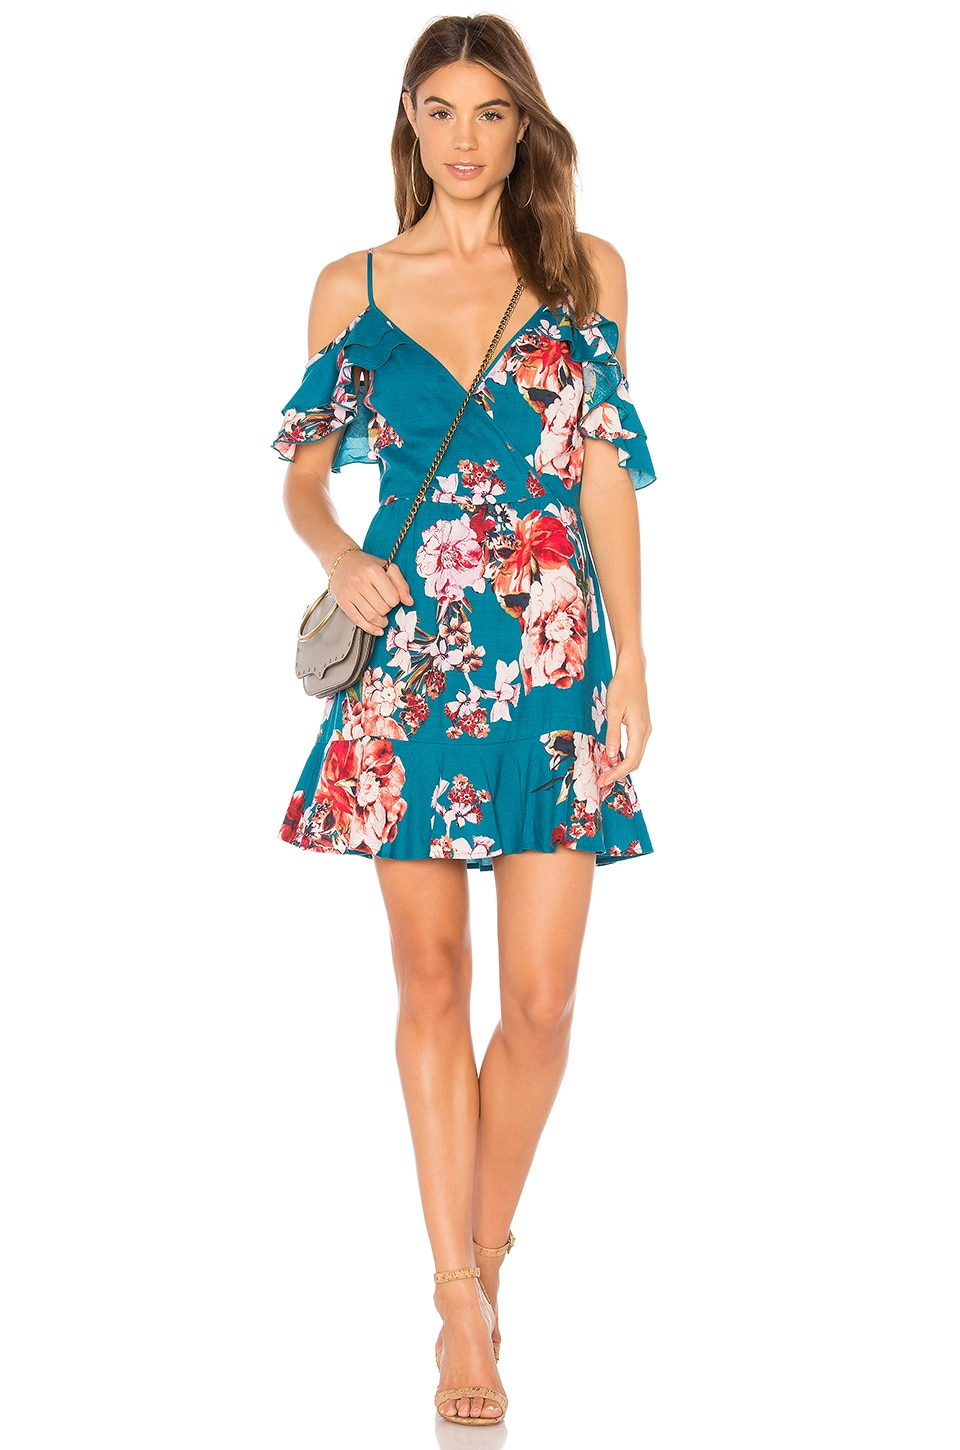 Band of Gypsies Large Floral Ruffle Hem Dress in Teal & Peach